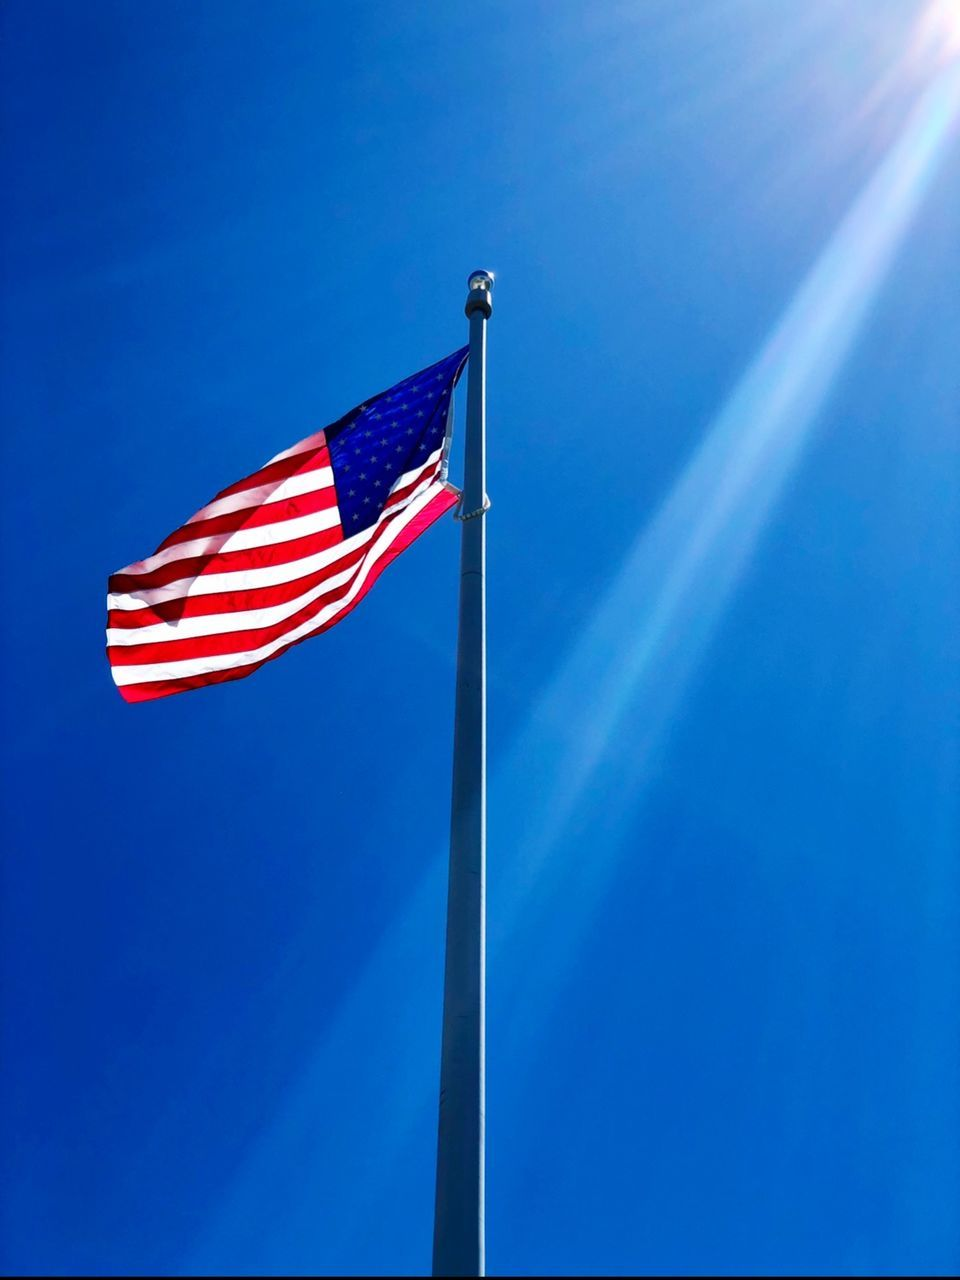 blue, patriotism, flag, low angle view, sky, pole, nature, no people, striped, red, clear sky, wind, environment, sunlight, waving, day, copy space, freedom, outdoors, independence, national icon